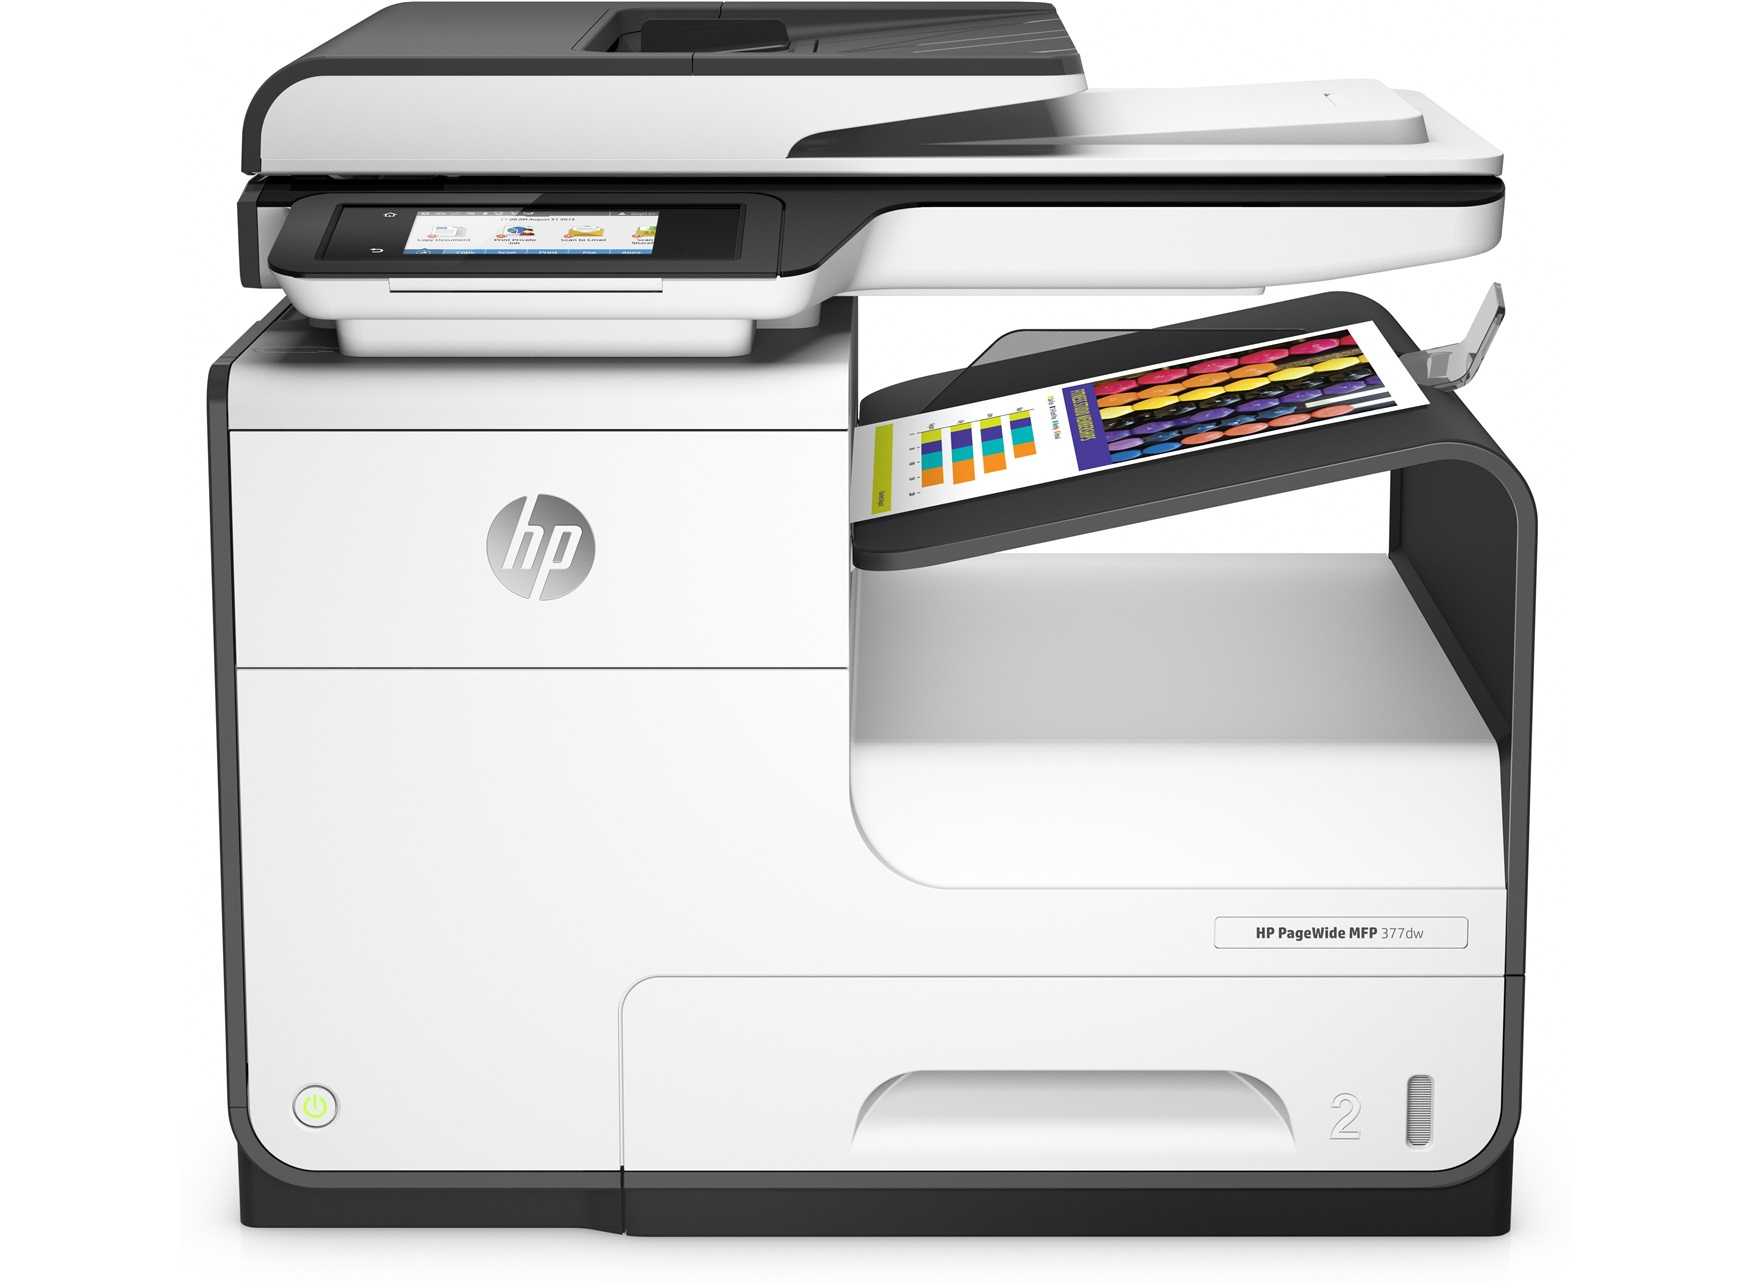 HP PageWide 377dw 1200 x 1200DPI A4 30ppm Wi-Fi